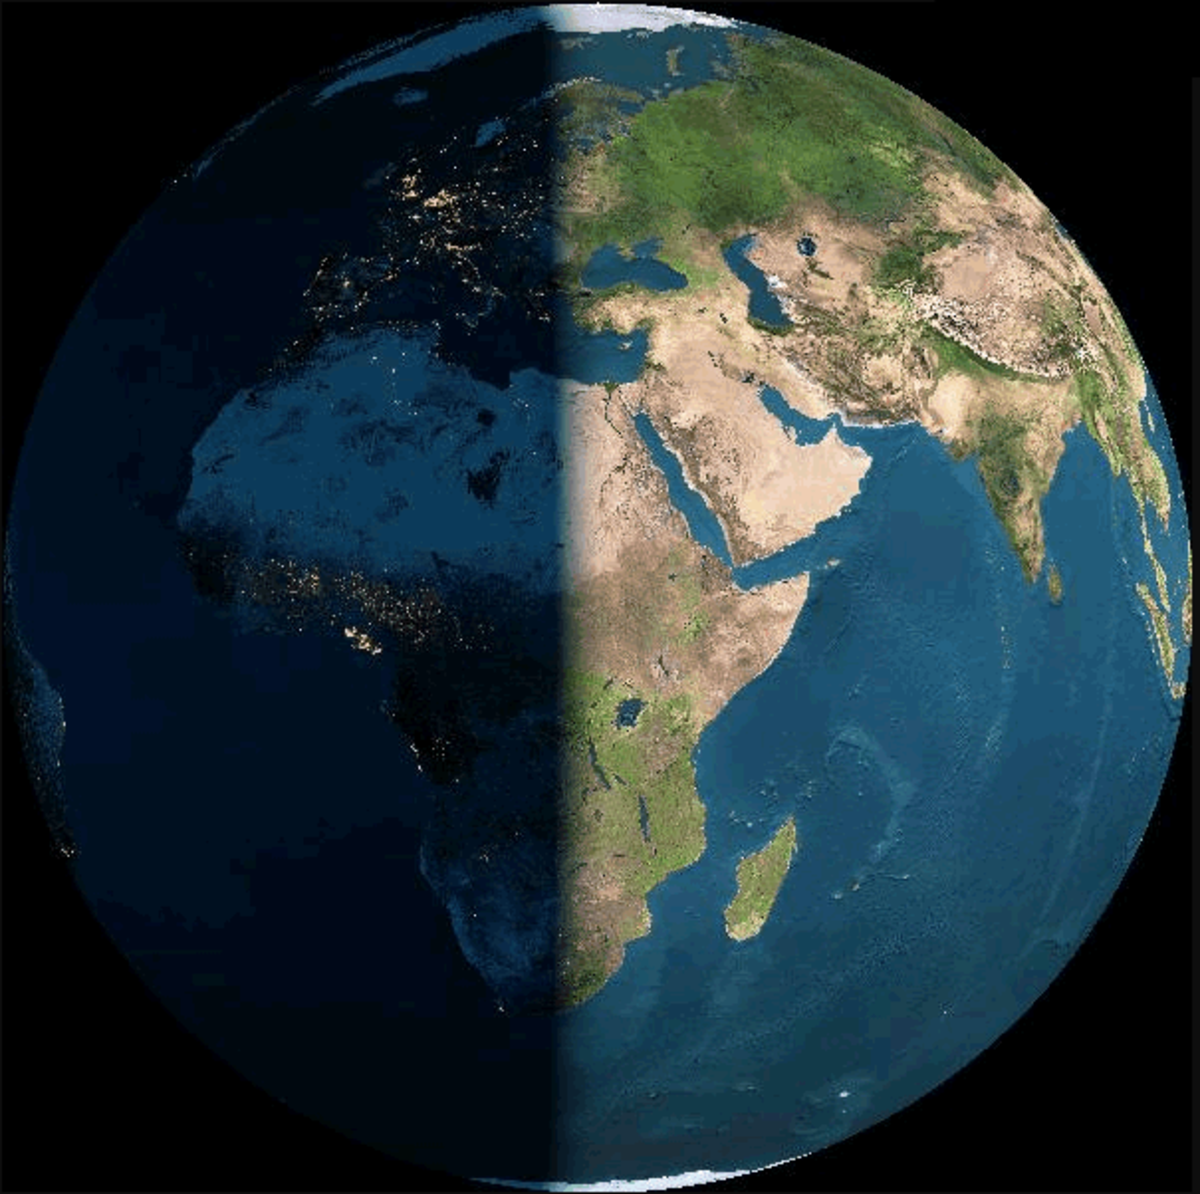 As one area on earth turns toward the sun and enters its light, the sun seems to rise in the east. When a location on earth leaves the sun's light and enters darkness, the sun appears to set in the west.